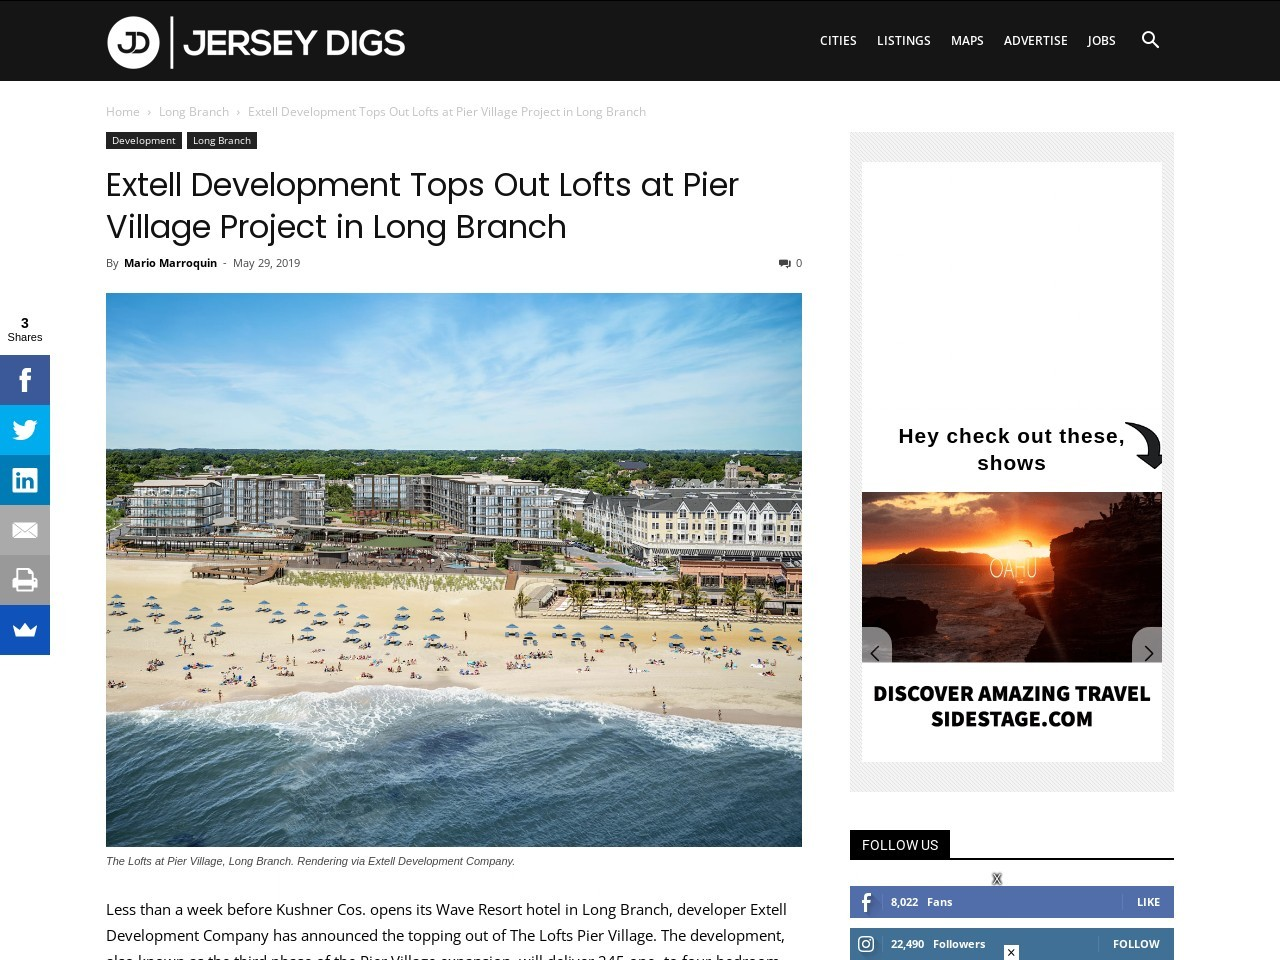 Extell Development Tops Out Lofts at Pier Village Project in Long Branch